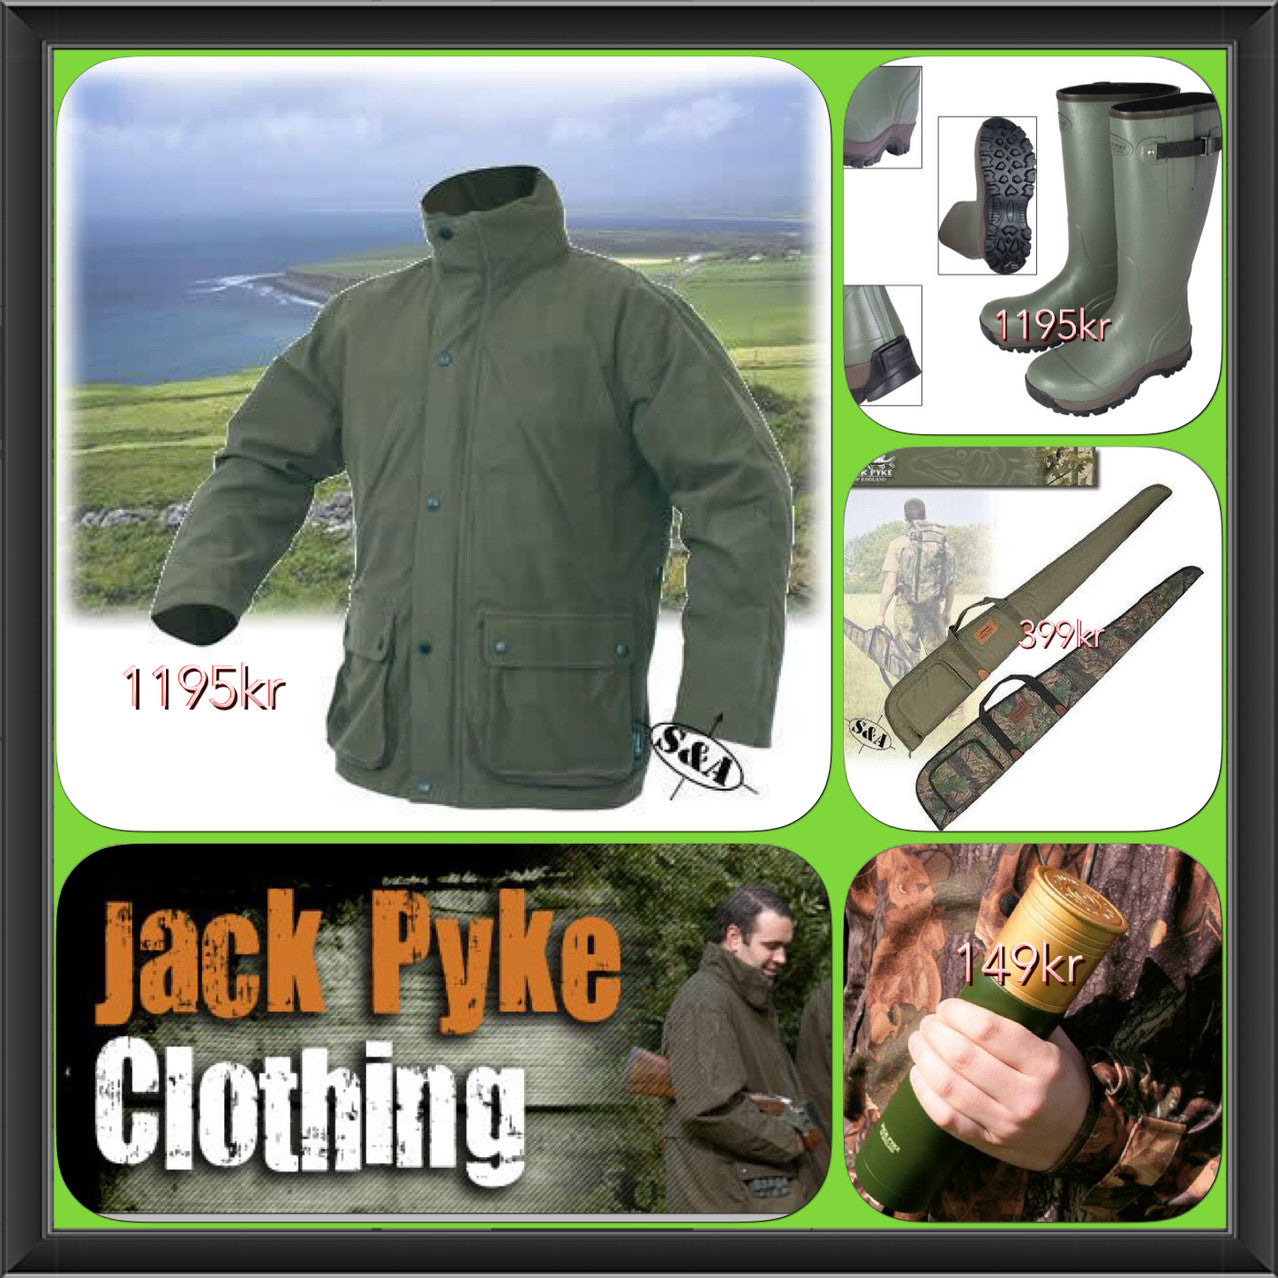 Our Jack Pyke products